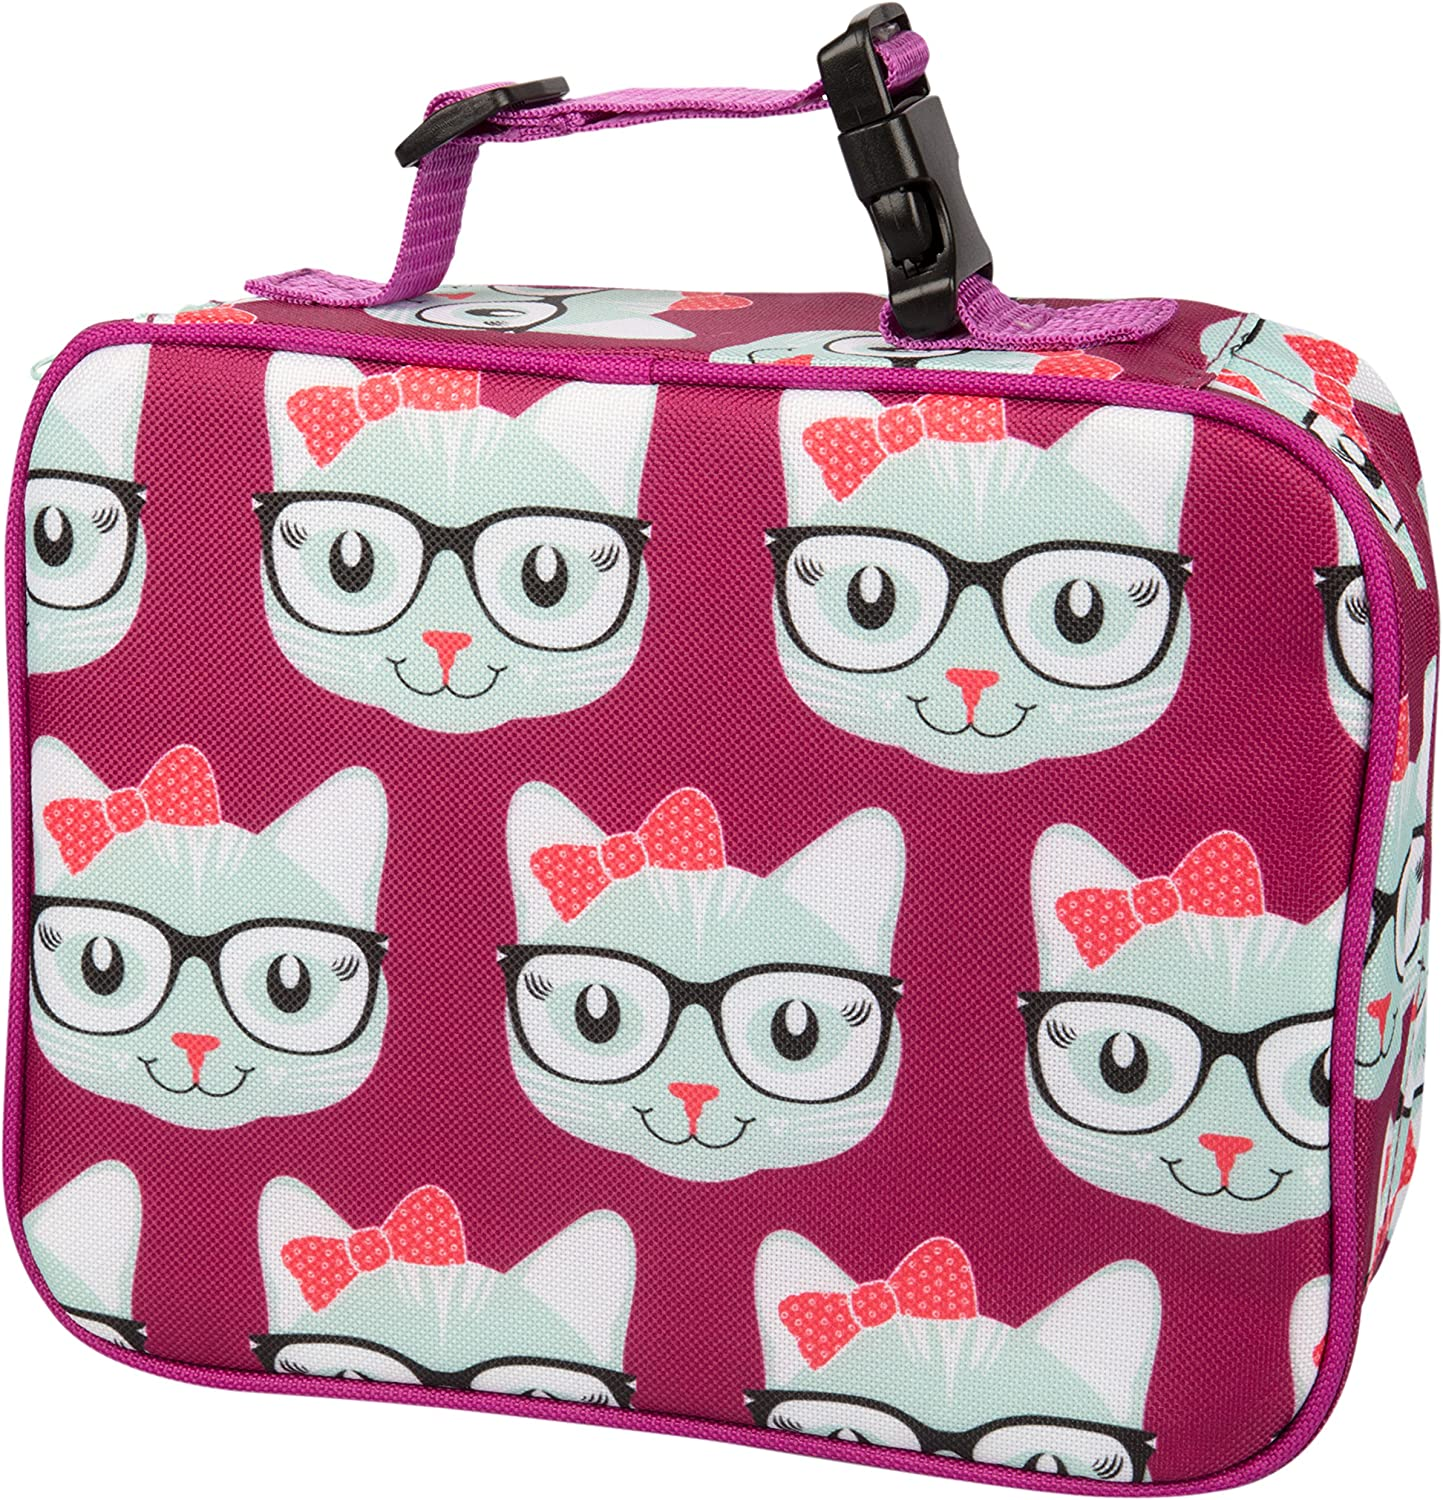 Bentology Lunch Box for Girls - Kids Insulated Lunchbox Tote Bag Fits Bento Boxes